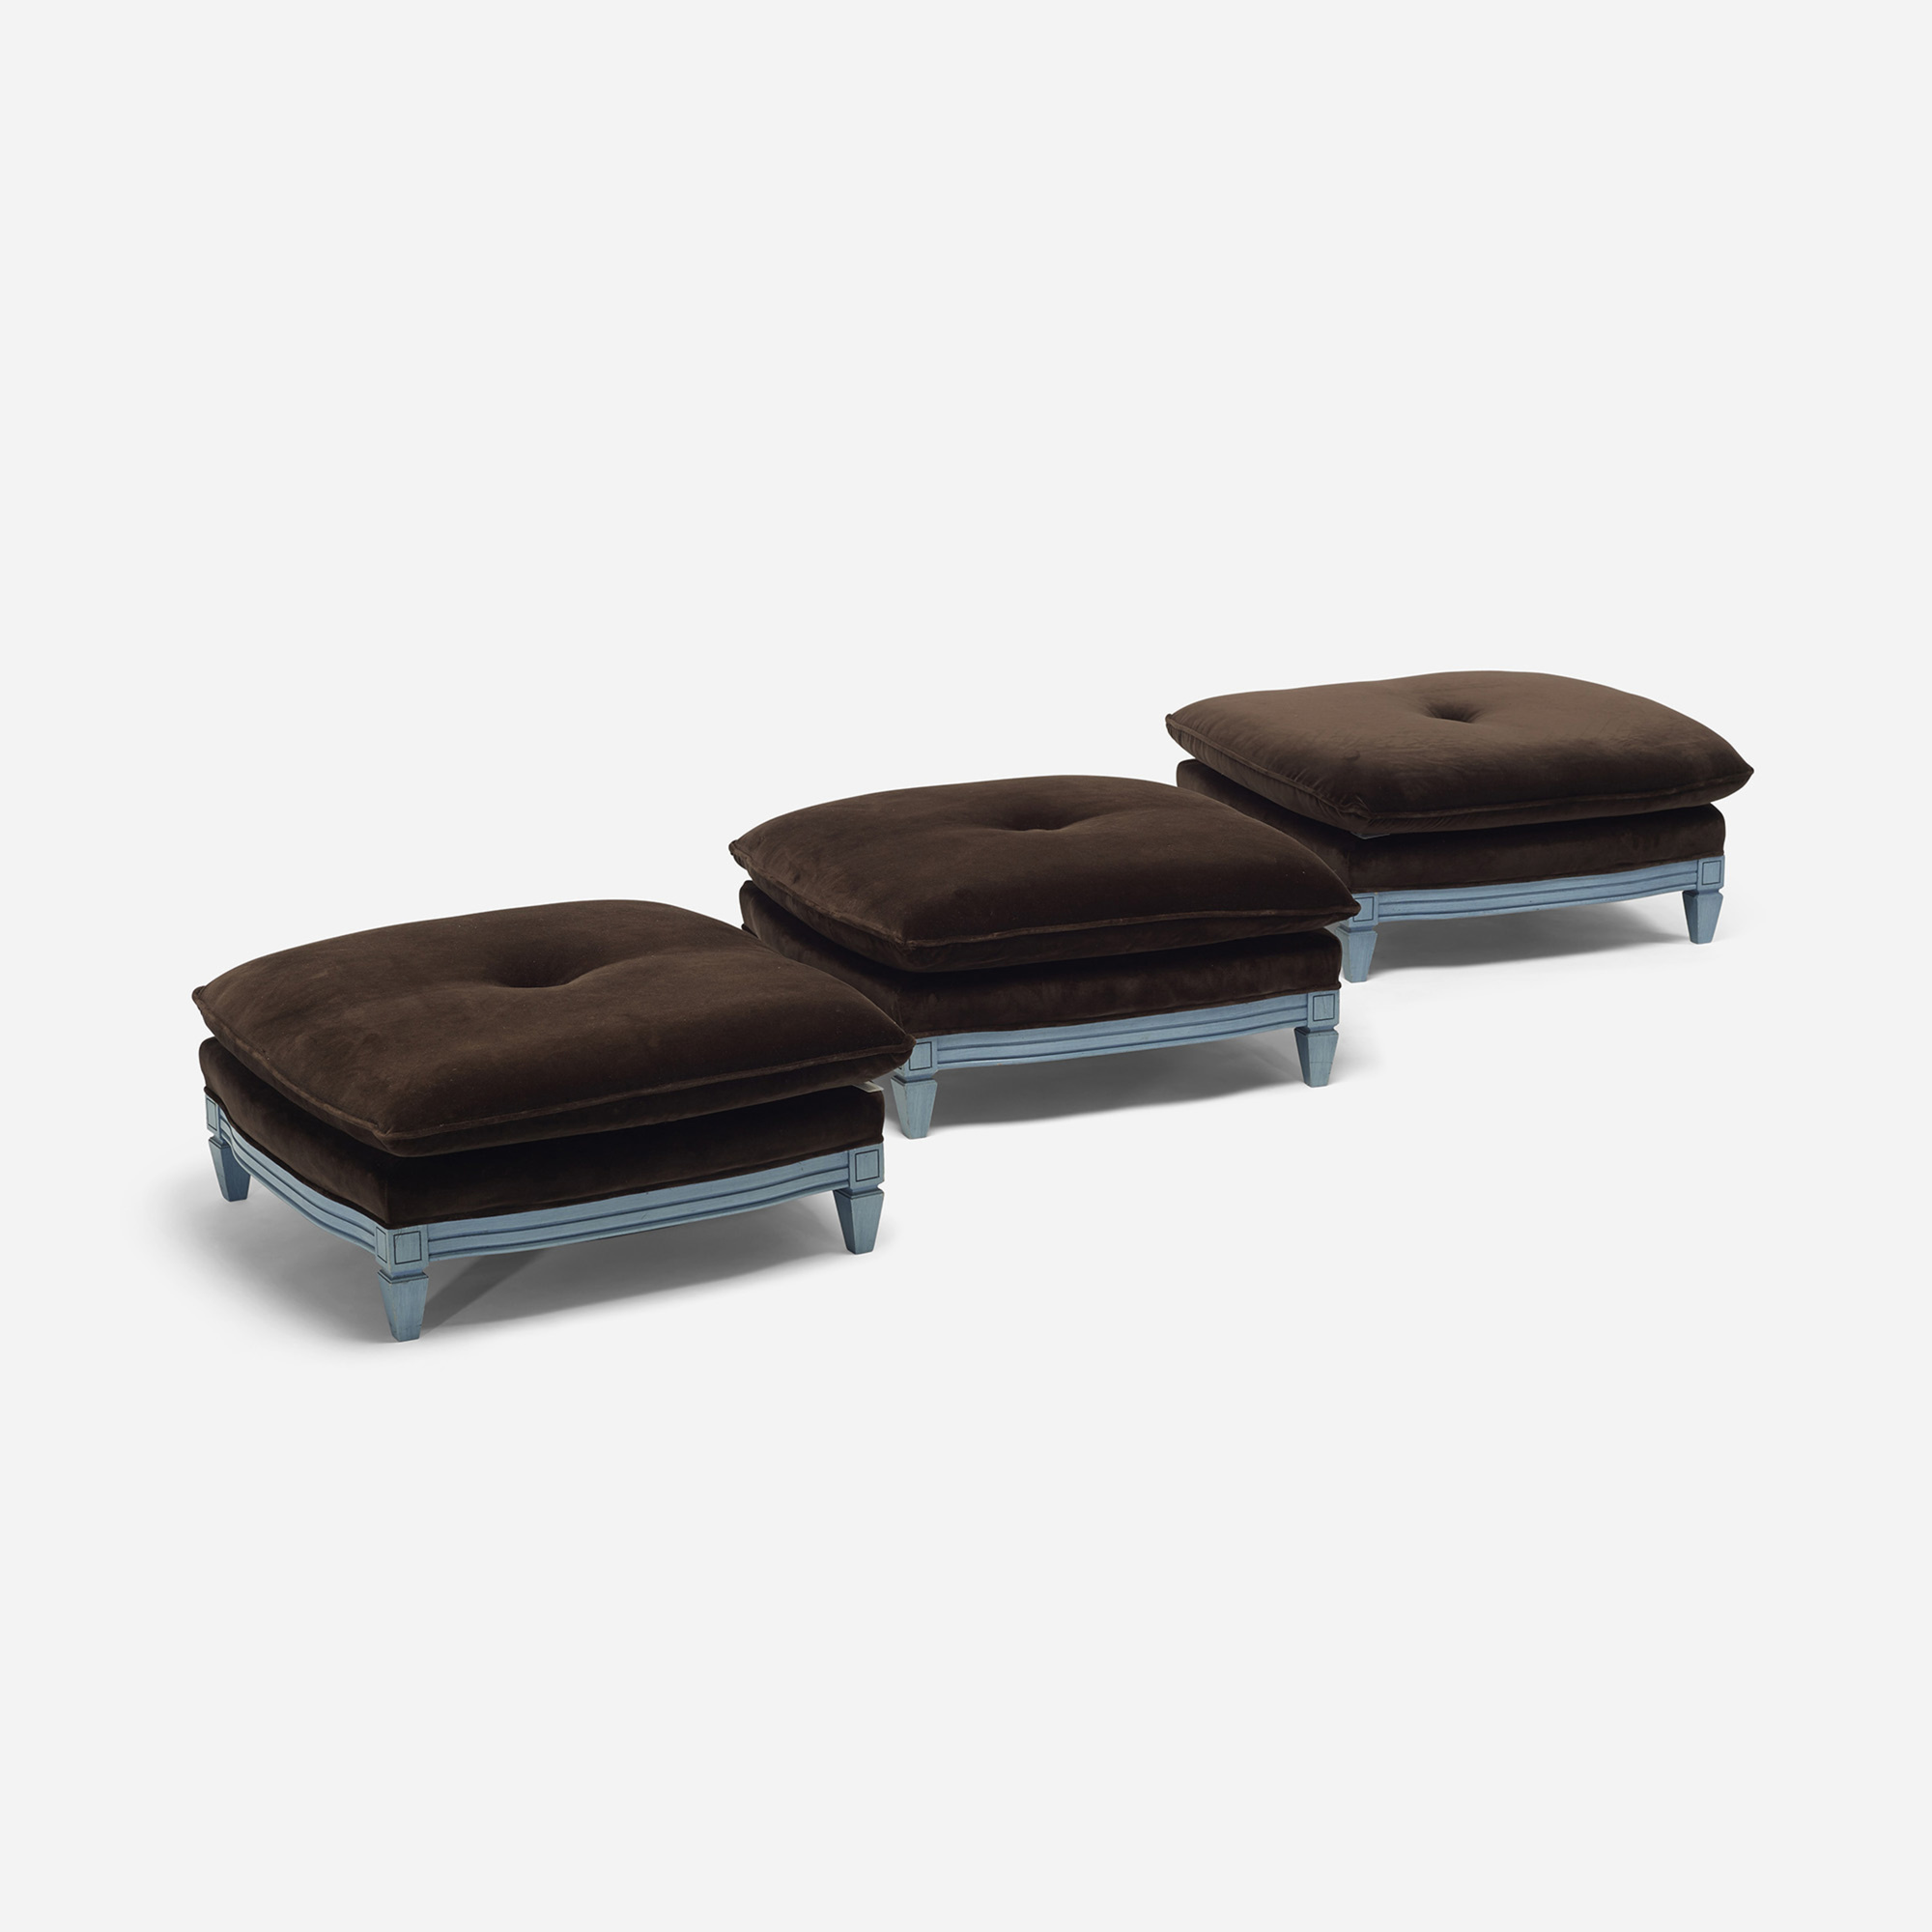 216: Contemporary / ottomans, set of three (2 of 3)